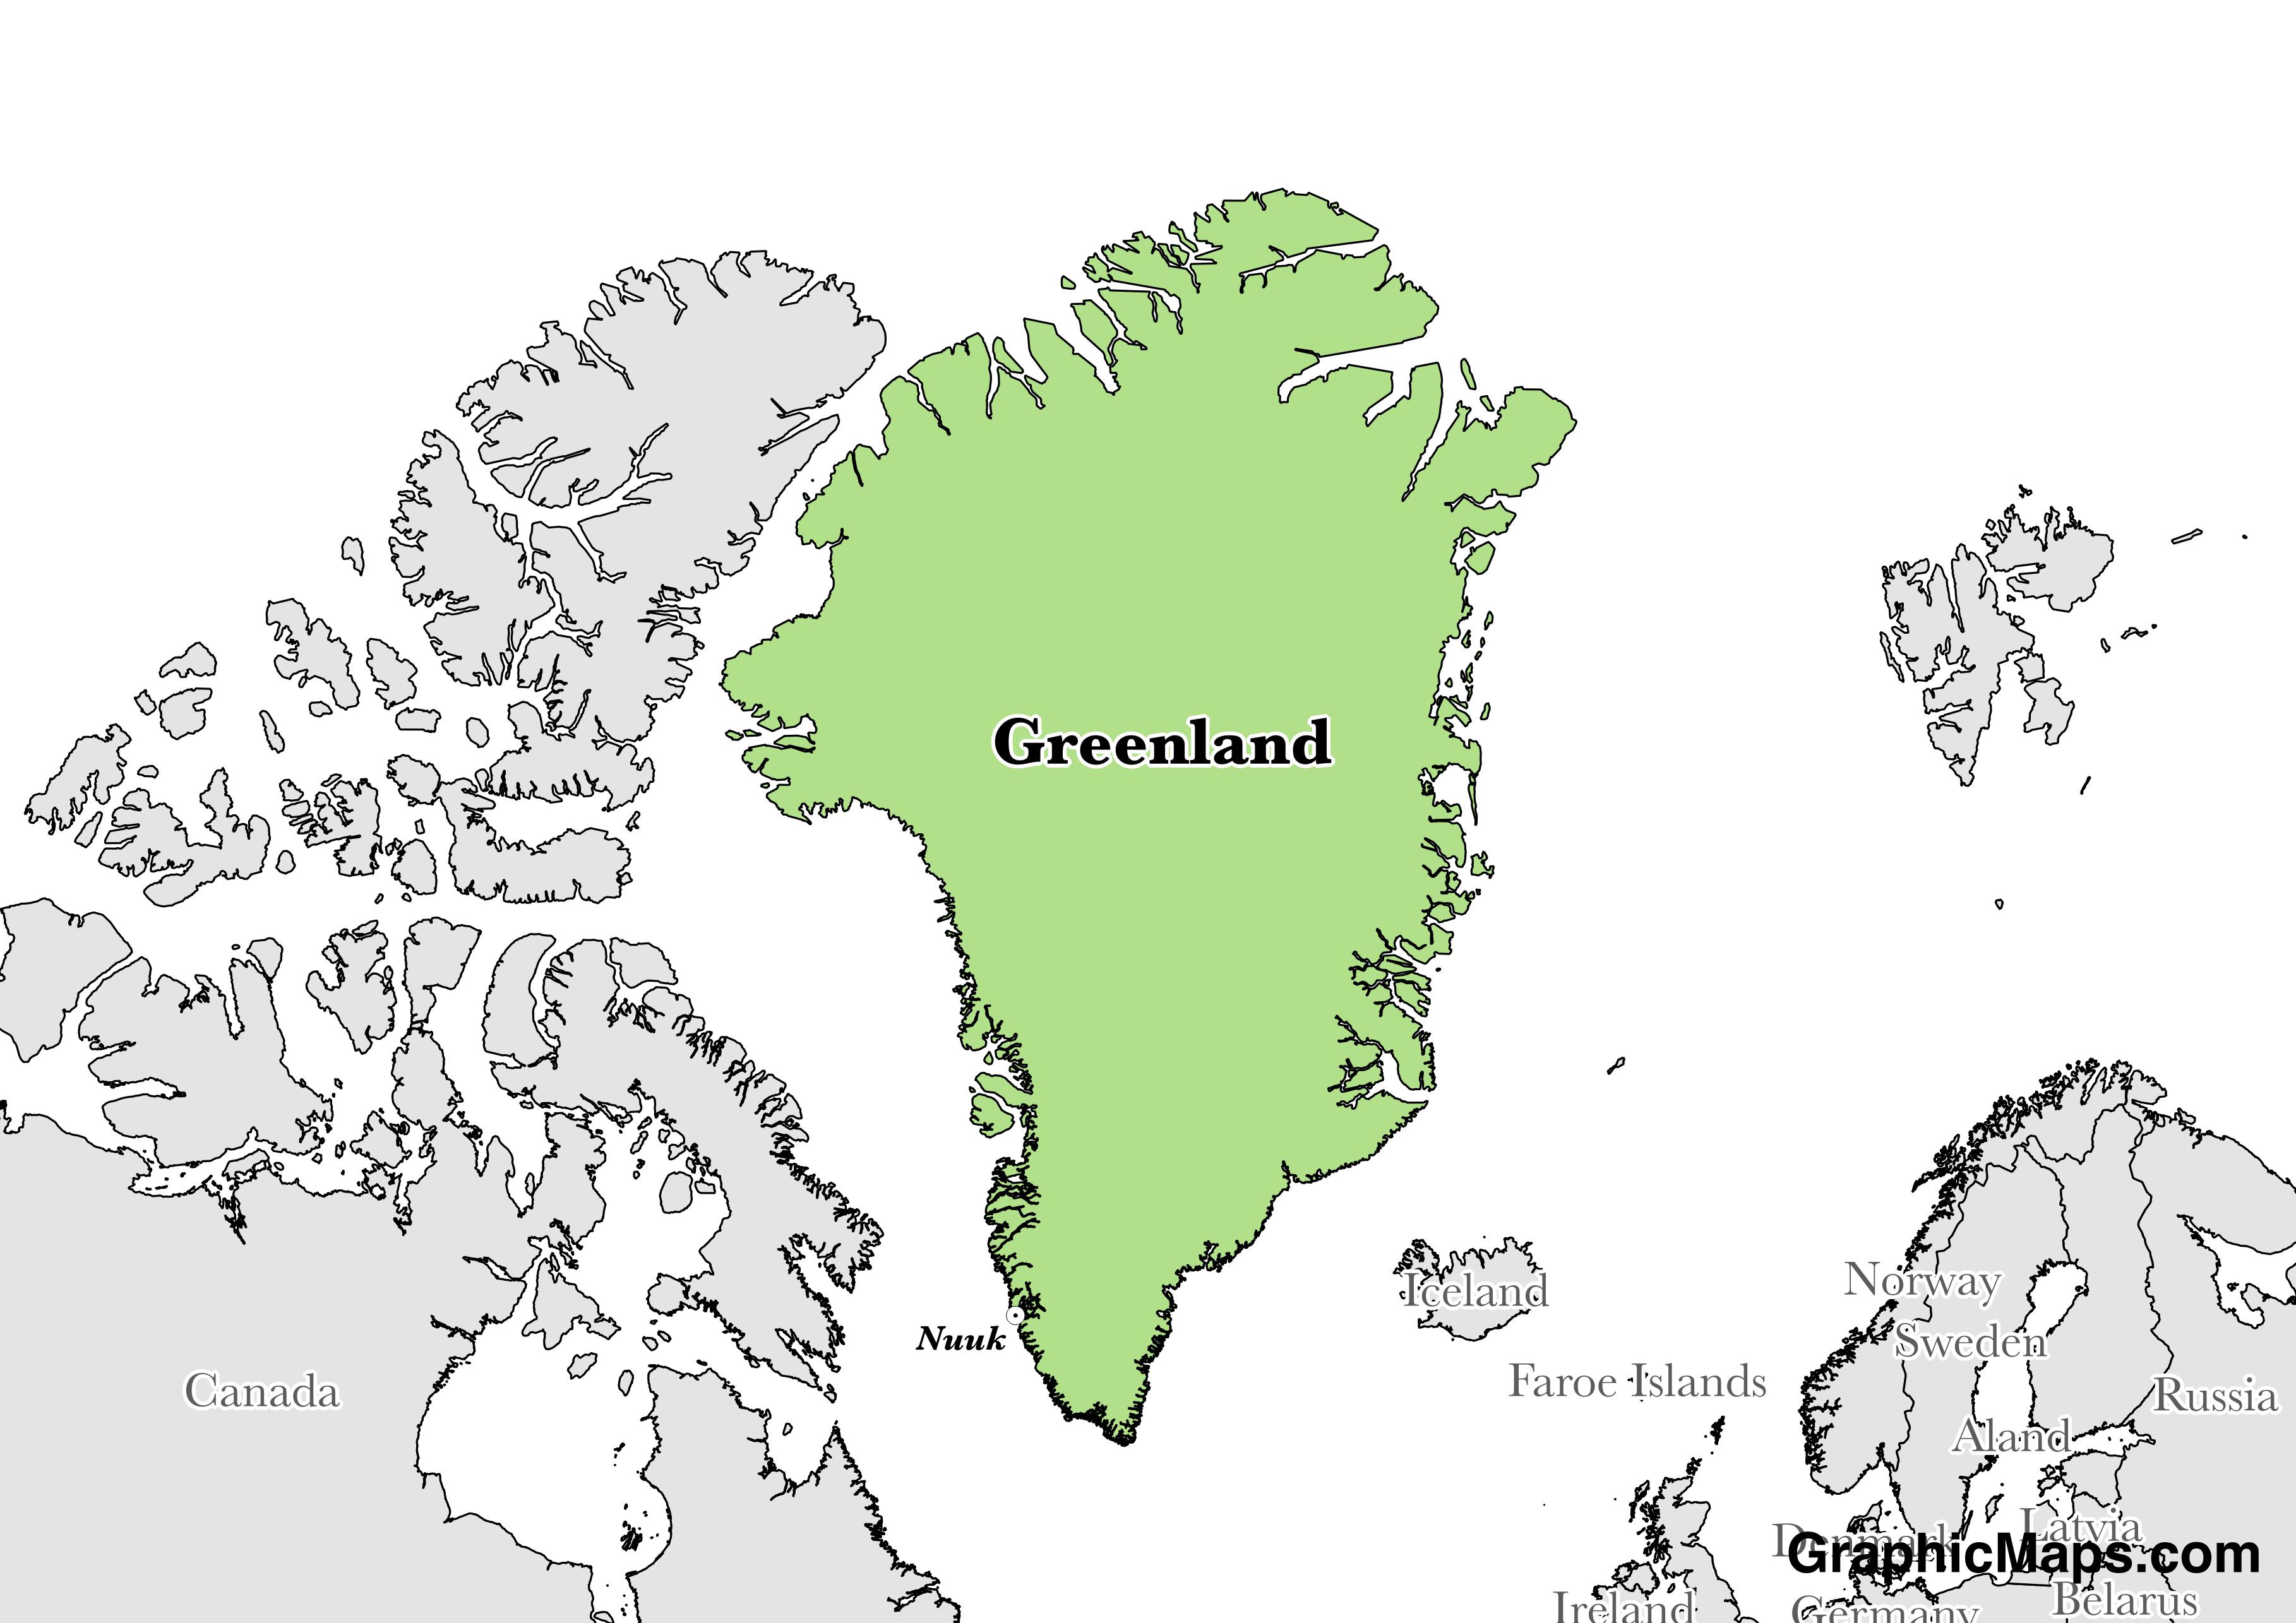 Map showing the location of Greenland